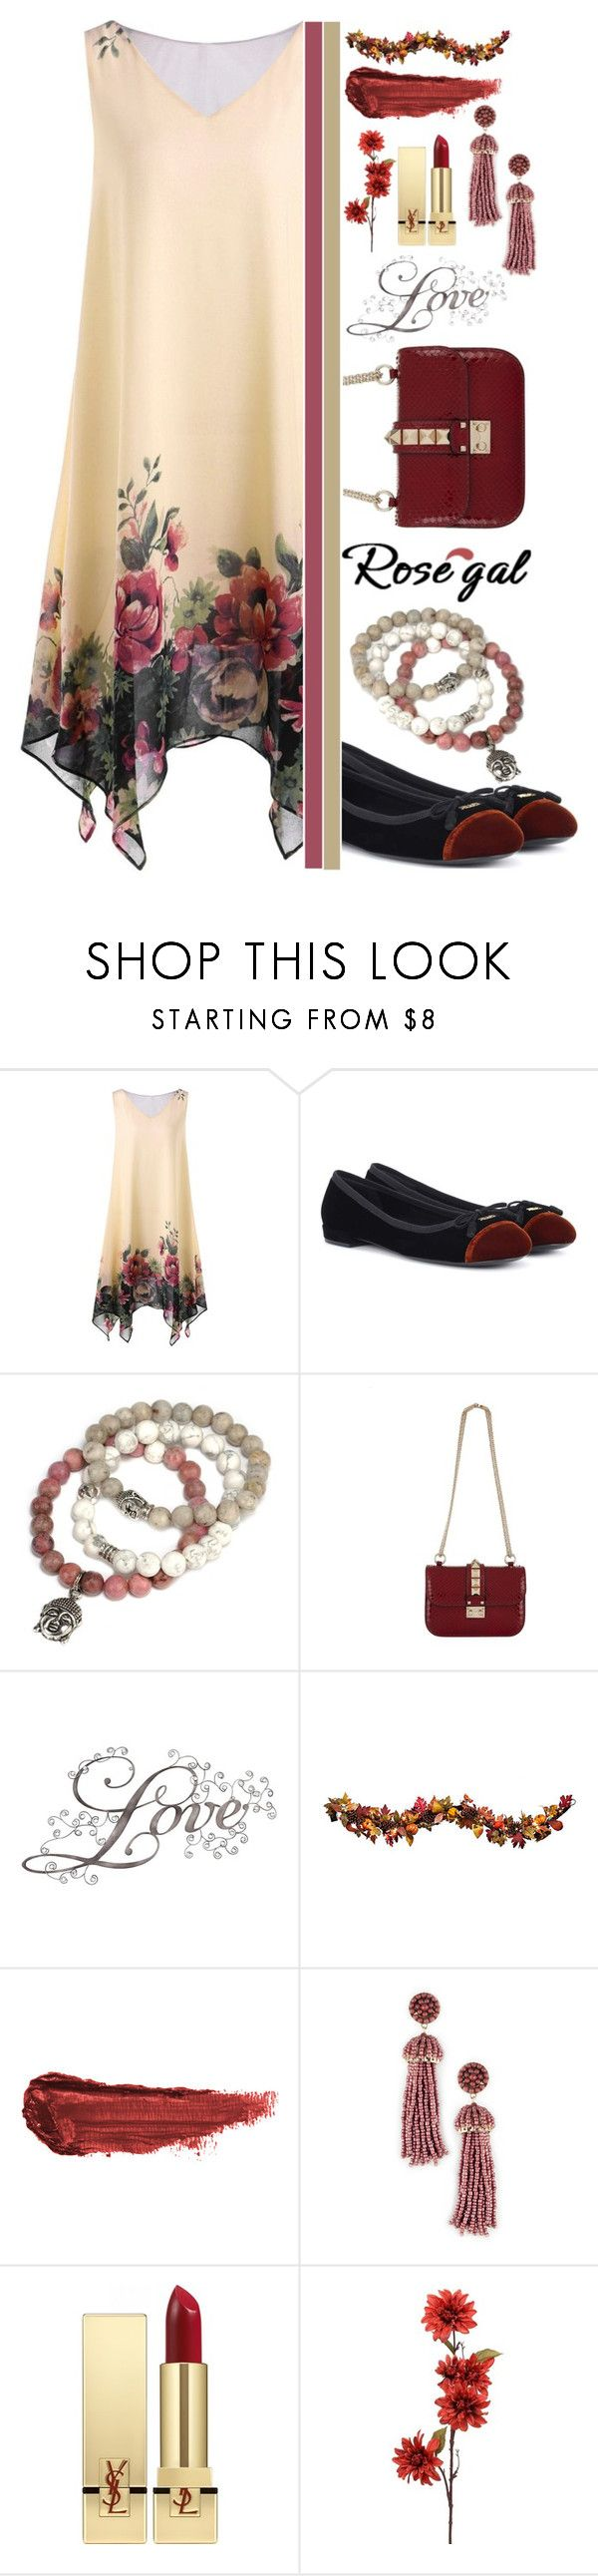 """""""Rosegal Contest ♥"""" by av-anul ❤ liked on Polyvore featuring Prada, Tyler Mackenzie Designs, Valentino, Improvements, By Terry, Sole Society and Yves Saint Laurent"""